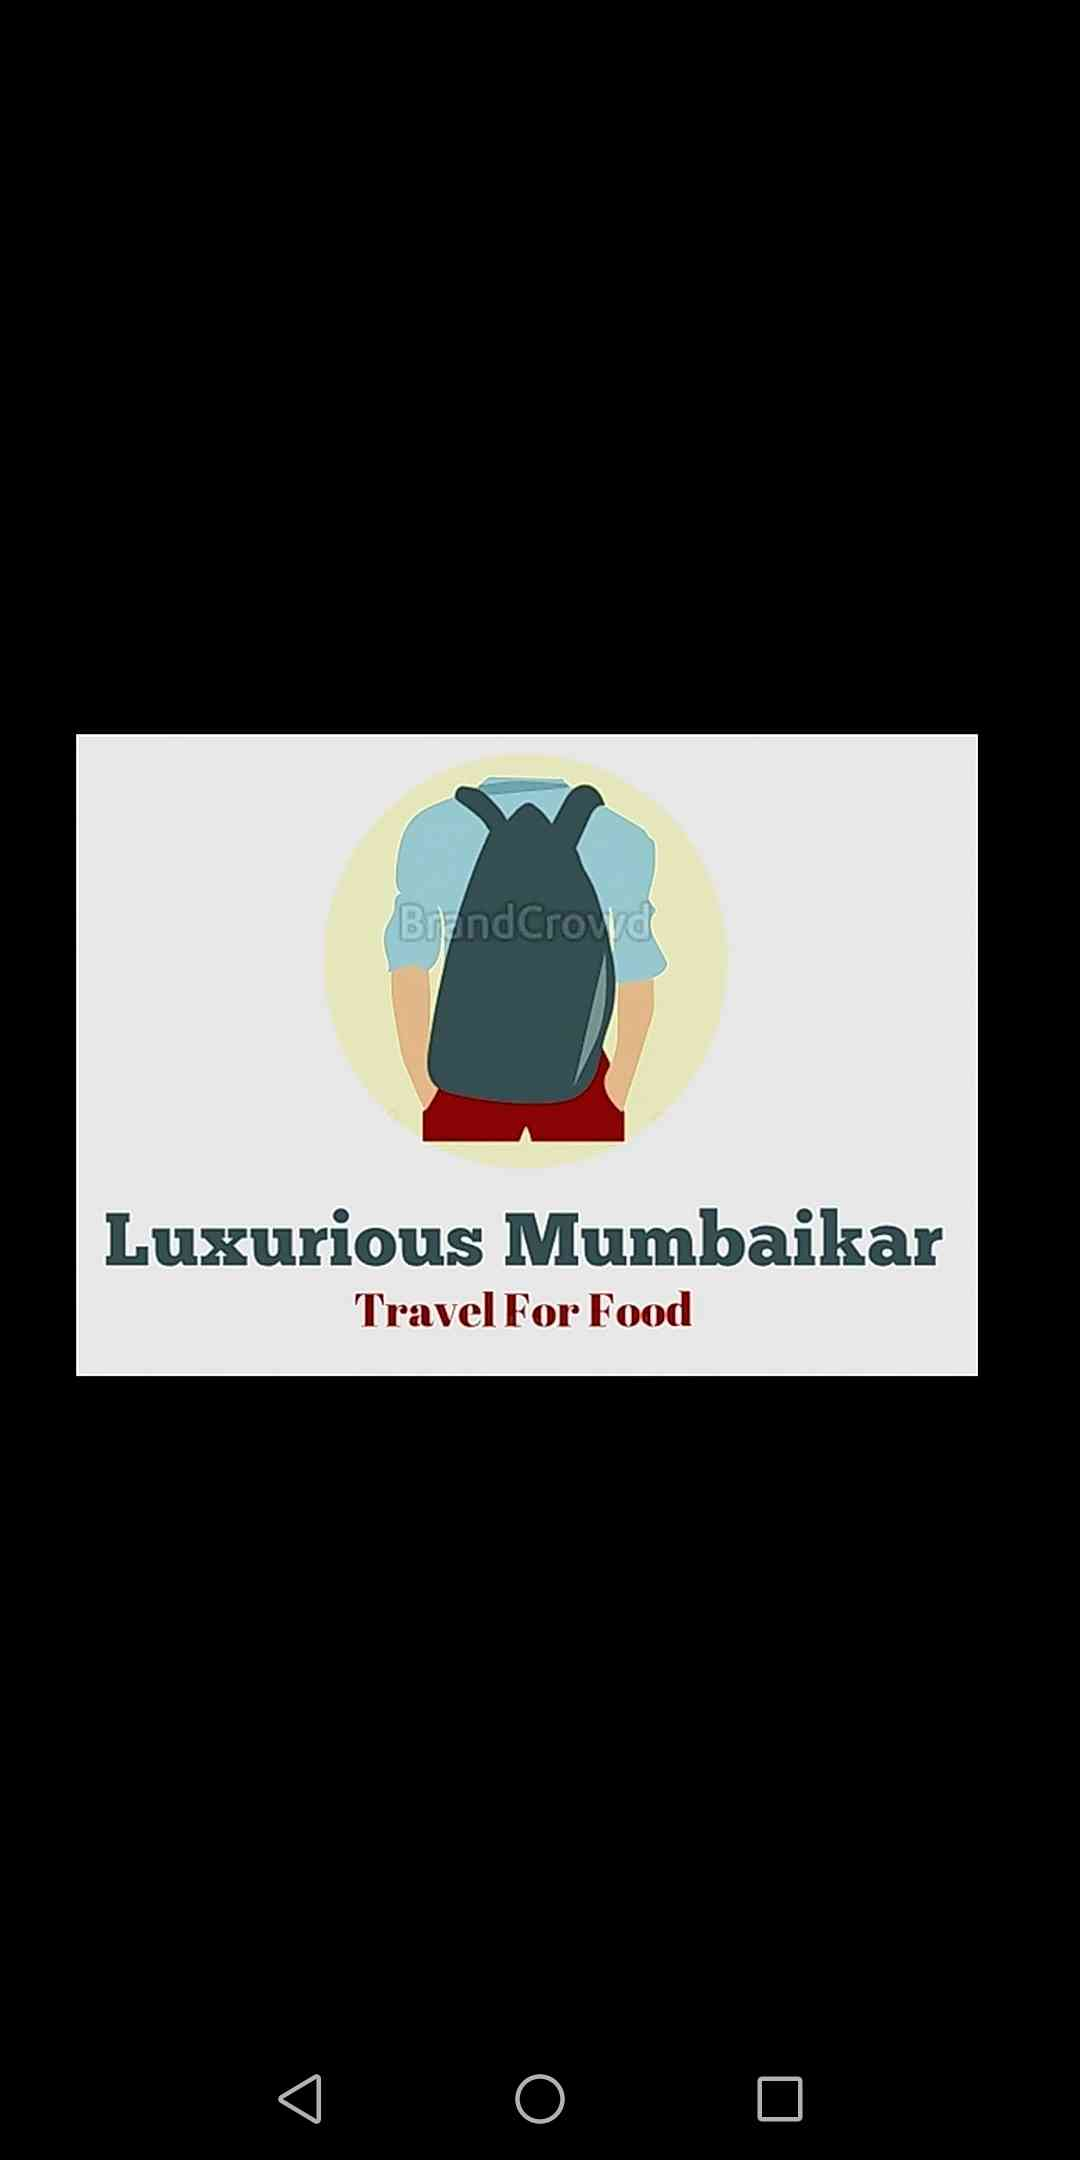 avatar of Luxurious Mumbaikar